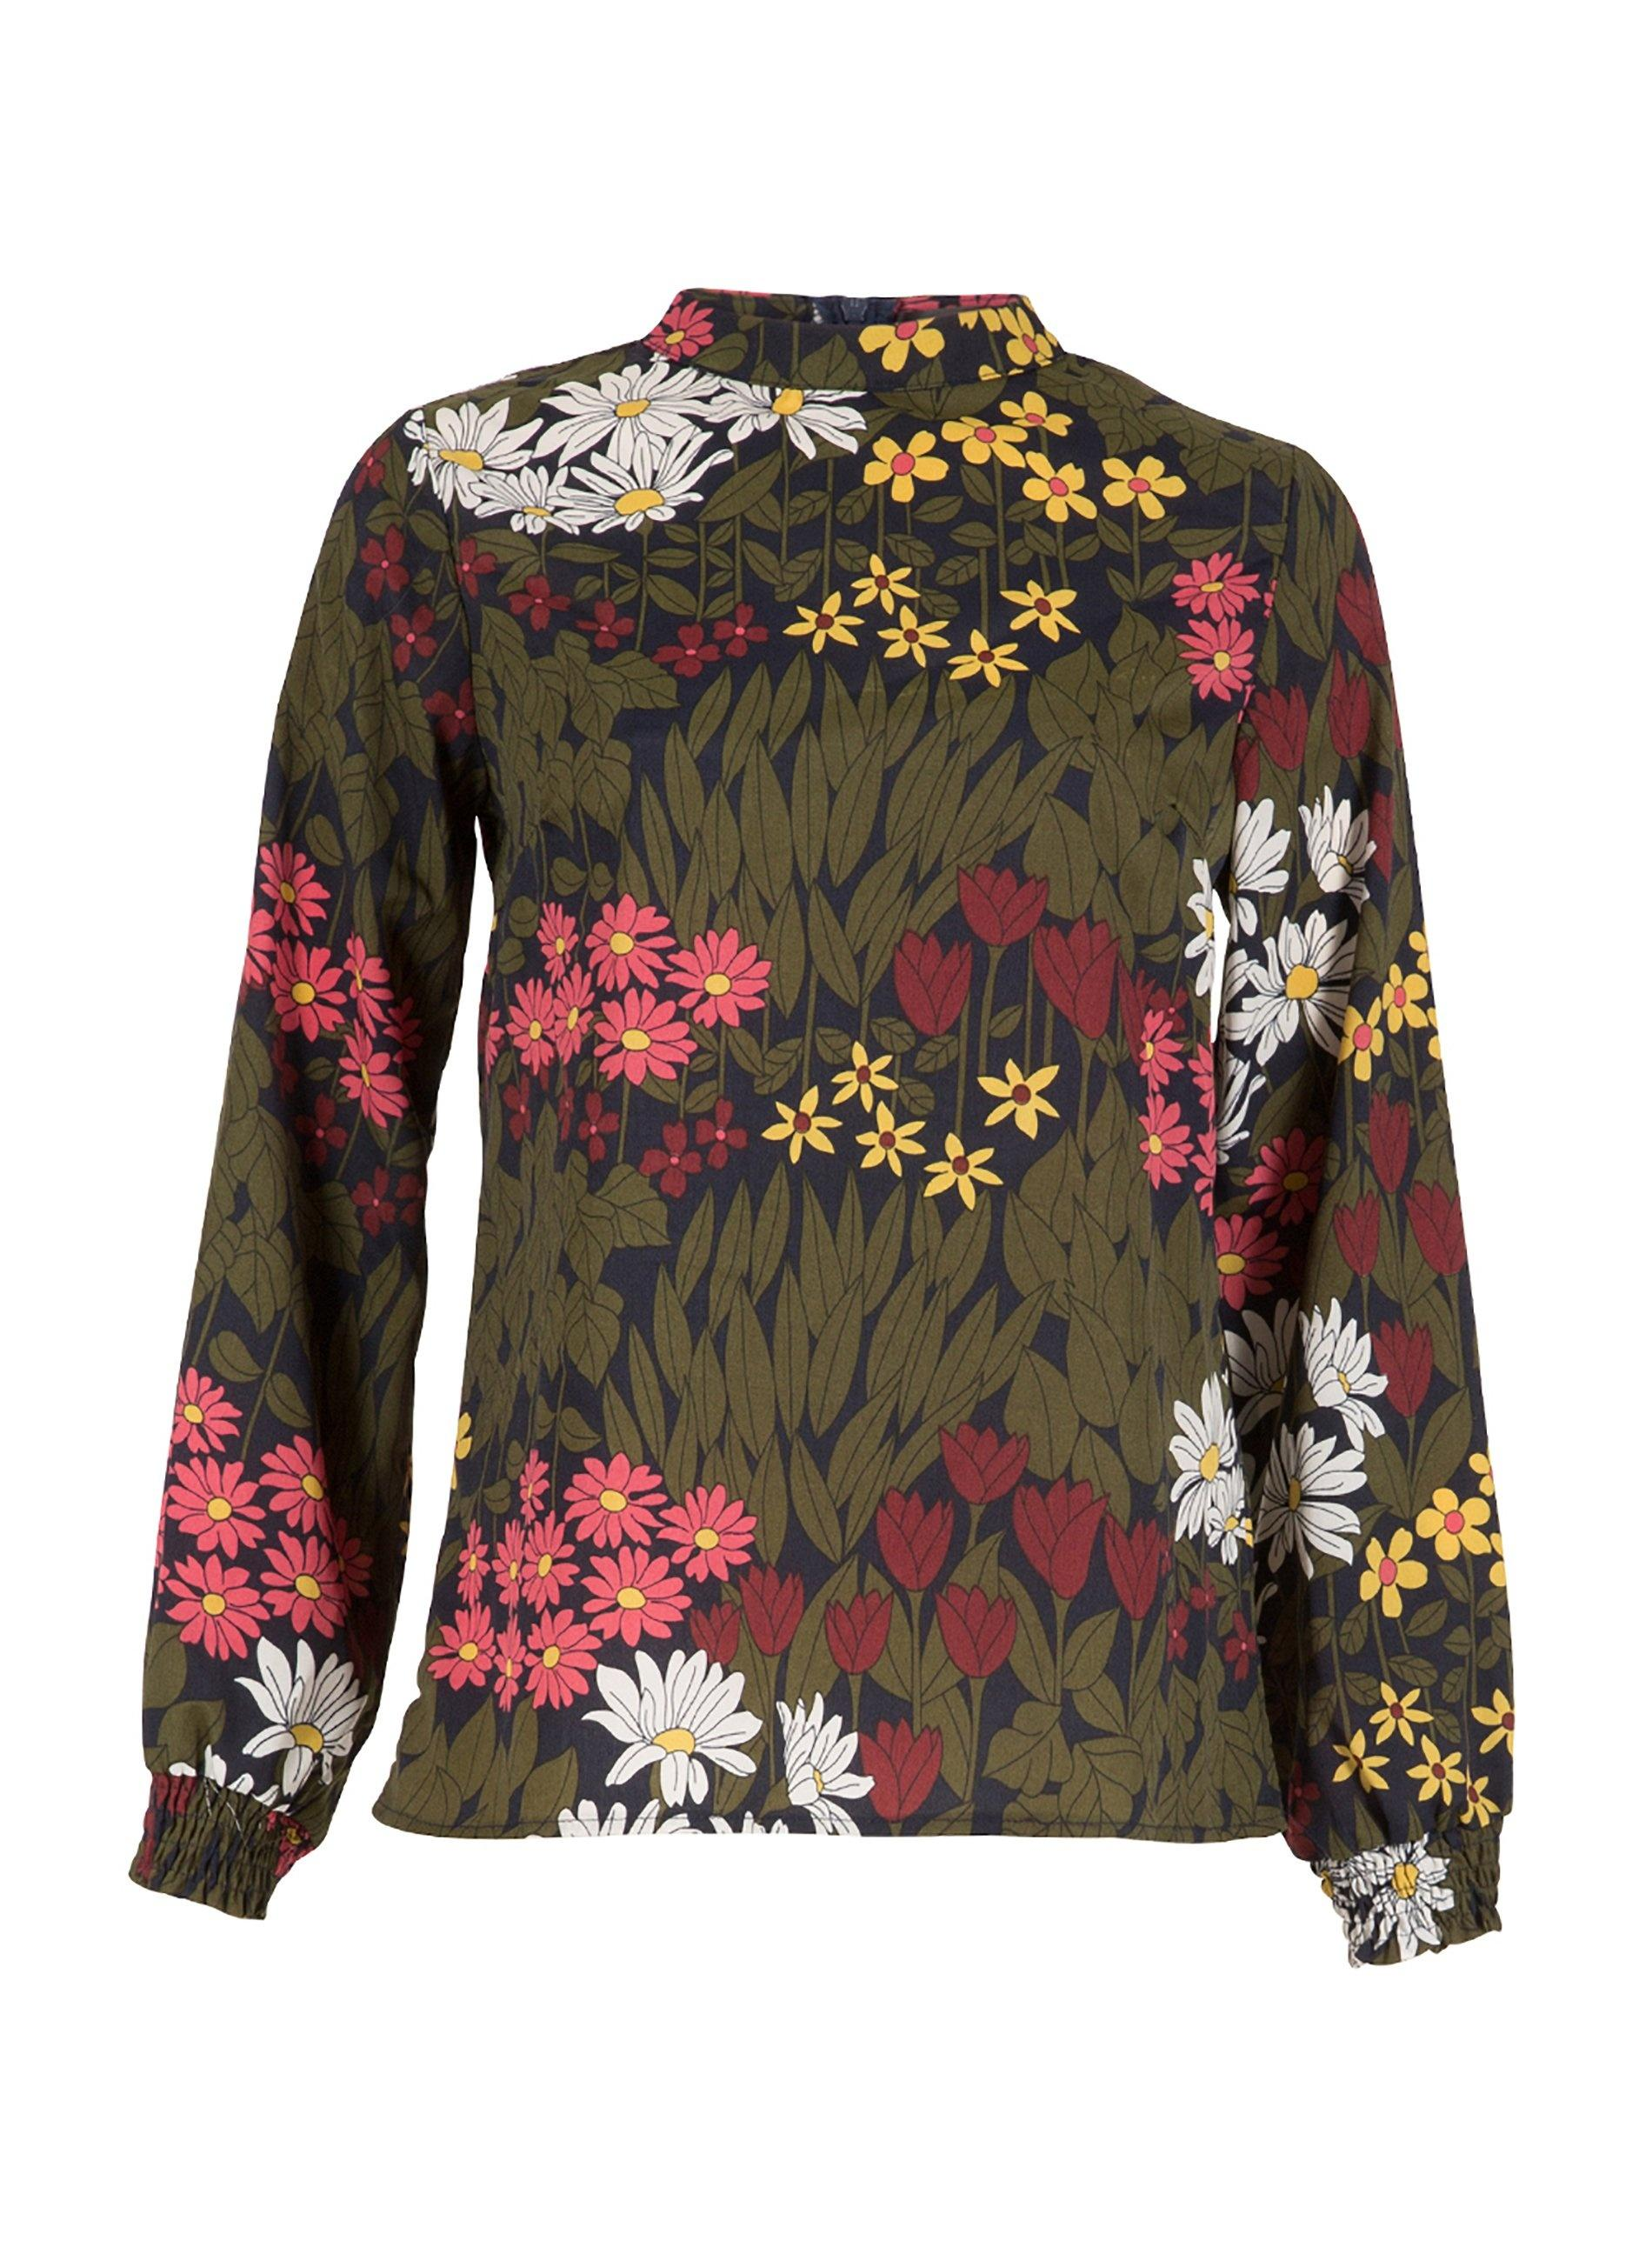 5a63d3fd5be5 Dorothy Perkins Tenki Green Floral Print Top in Green - Lyst